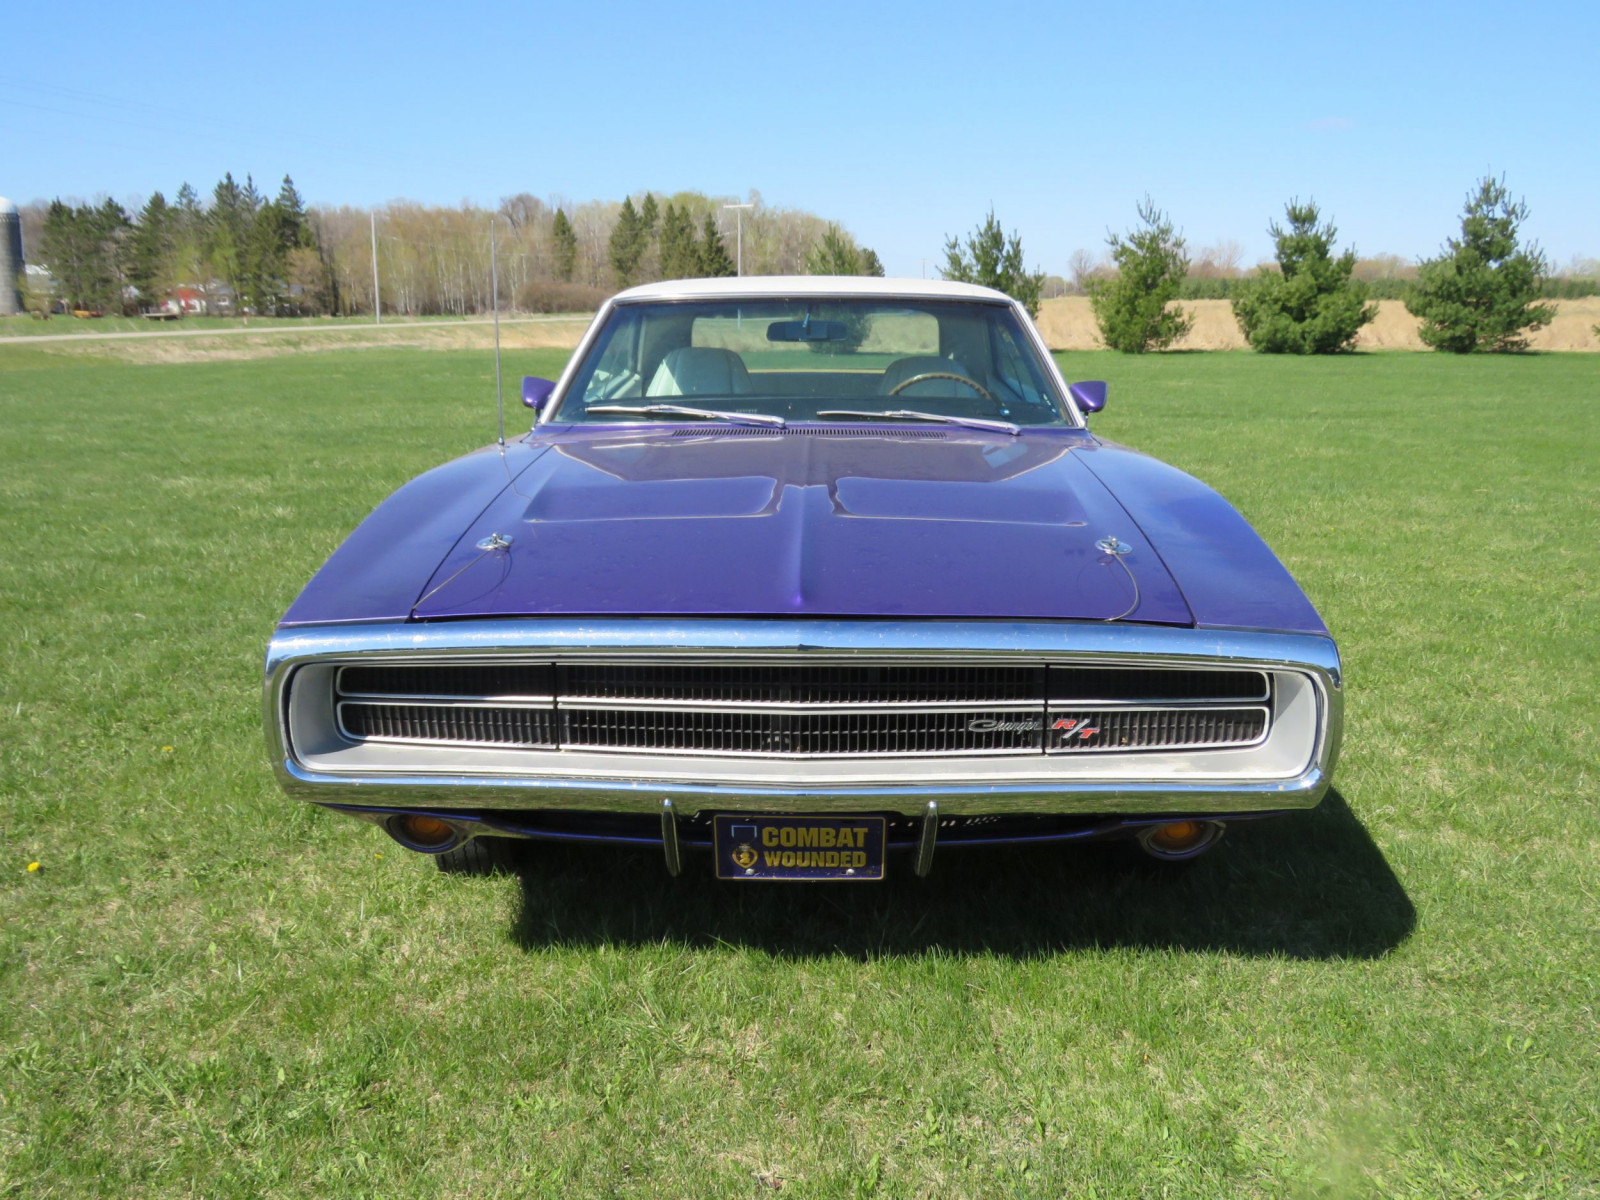 1970 Dodge Charger RT Amazing Survivor - Image 2